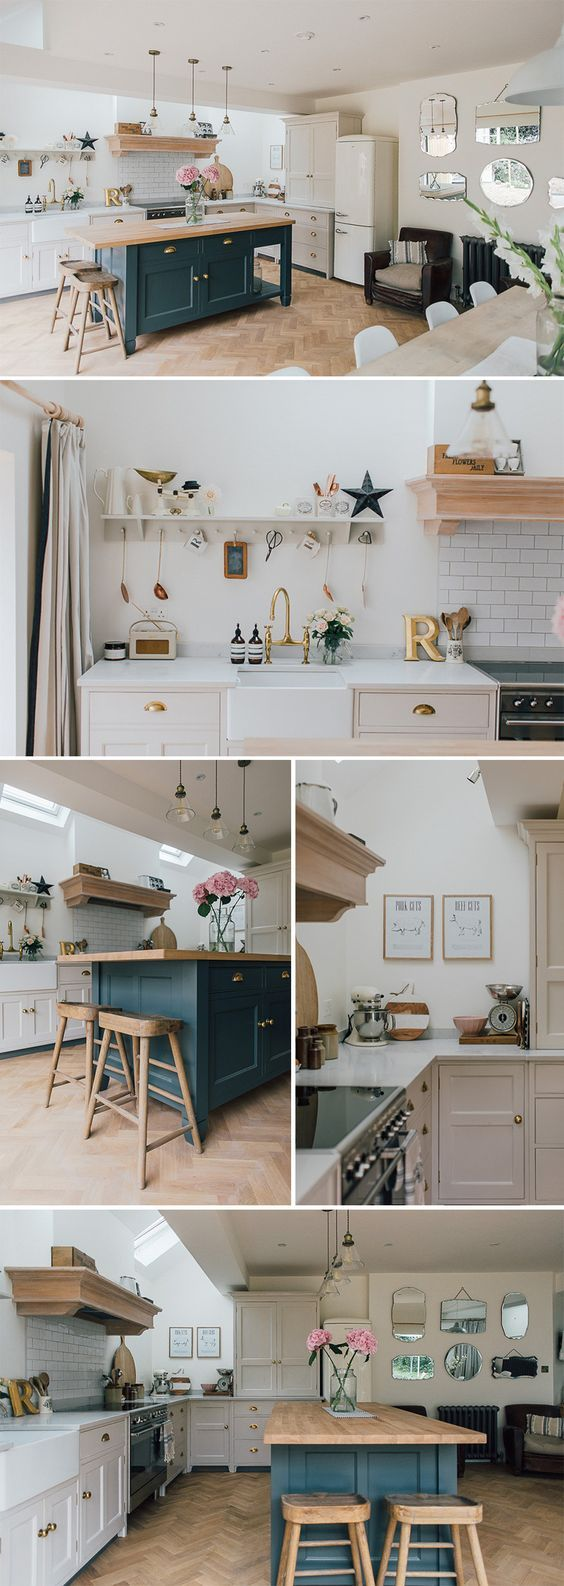 A modern country kitchen | Laura Ashley pendants | A Modern Country Farrow & Ball Downpipe And Skimming Stone Kitchen With Oak Parquet Flooring | parquet floor inspiration | farrow and ball inspiration | peg board shelf | butler sink | vintage kitchen accessories